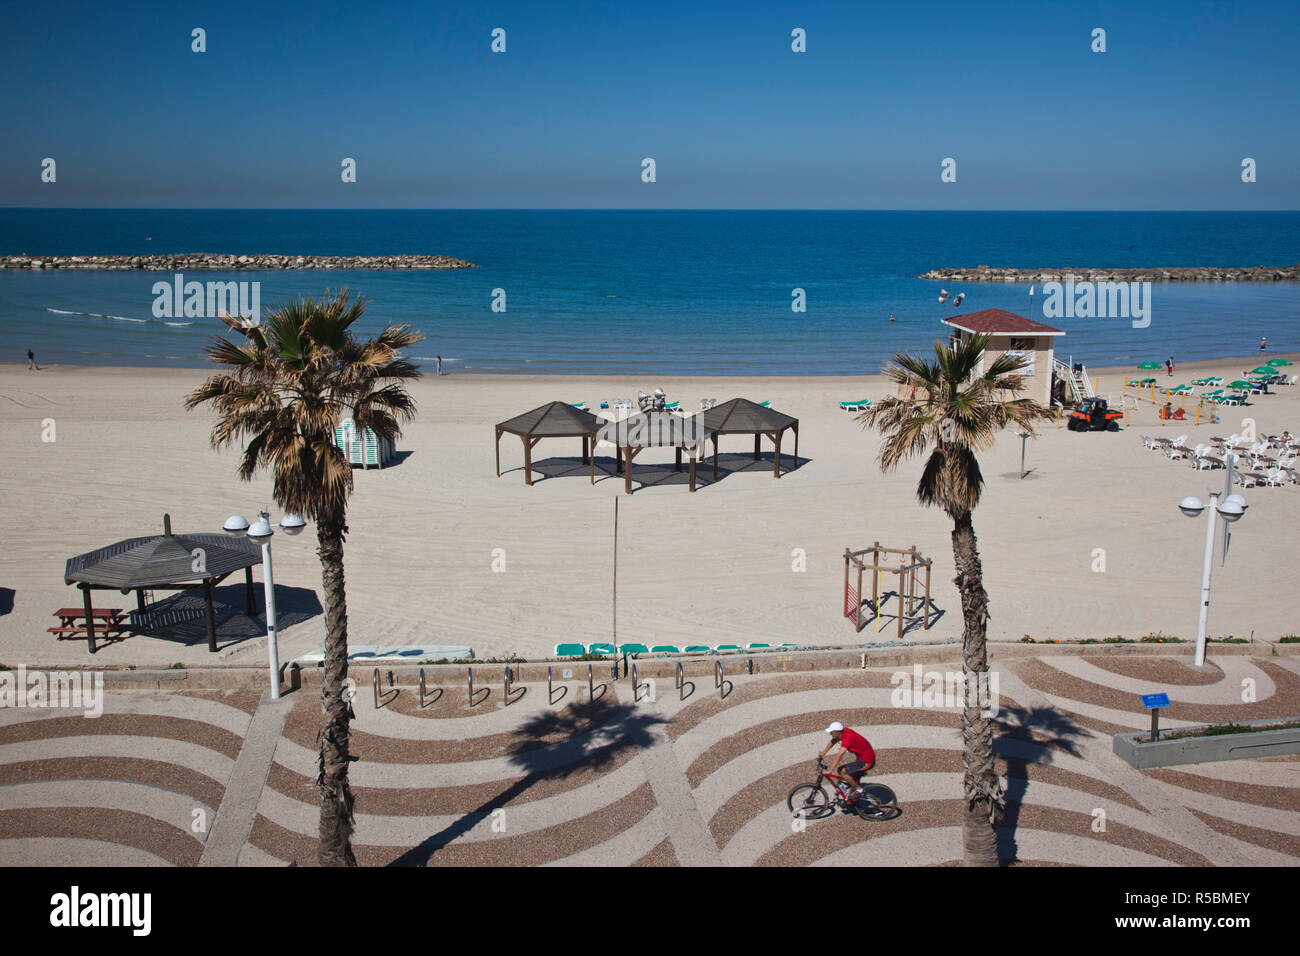 Israel, Tel Aviv beach walkway - Stock Image